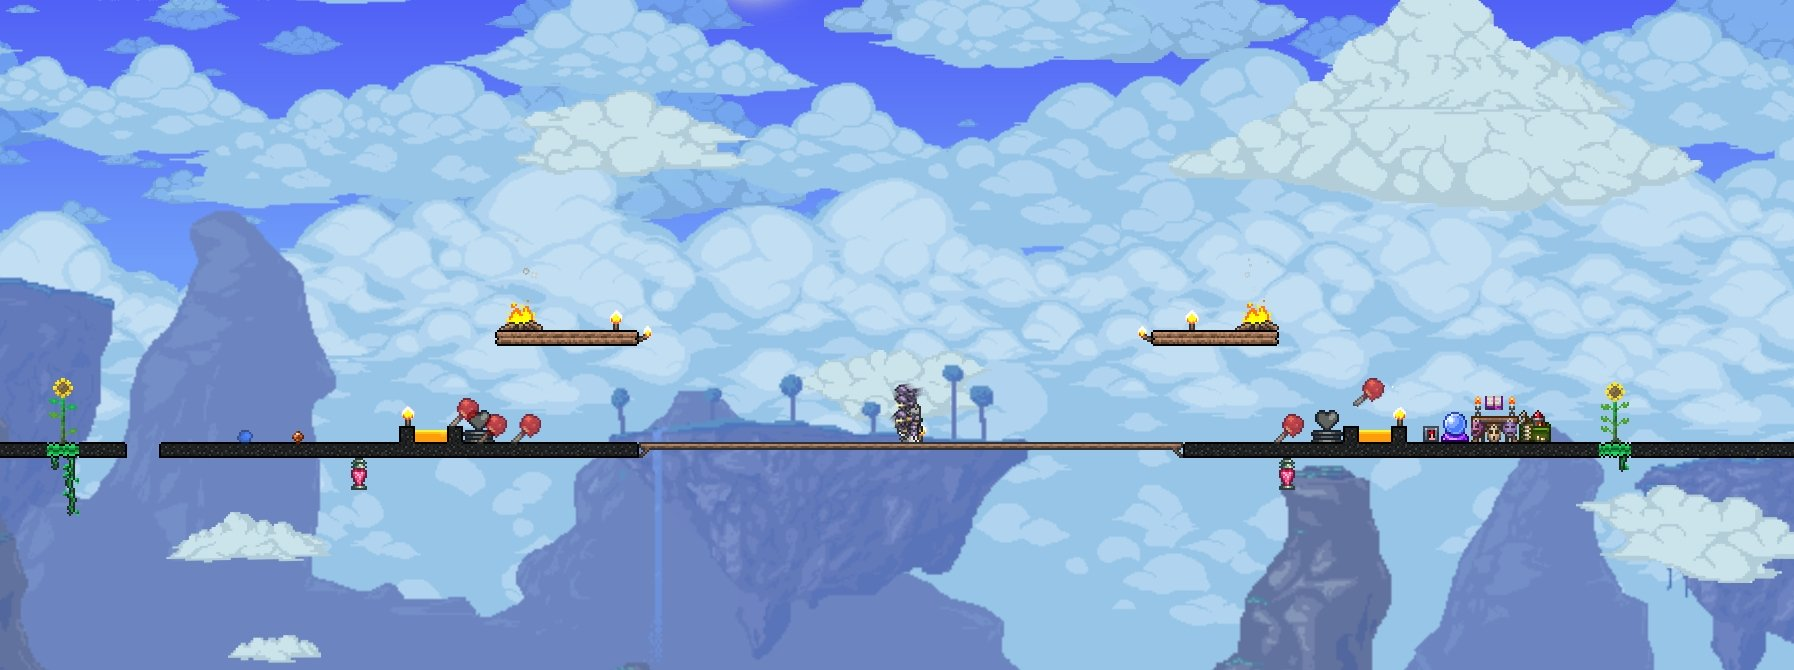 Terraria Arena For Moon Lord All Bosses Wiring Timer A Boss Fight In